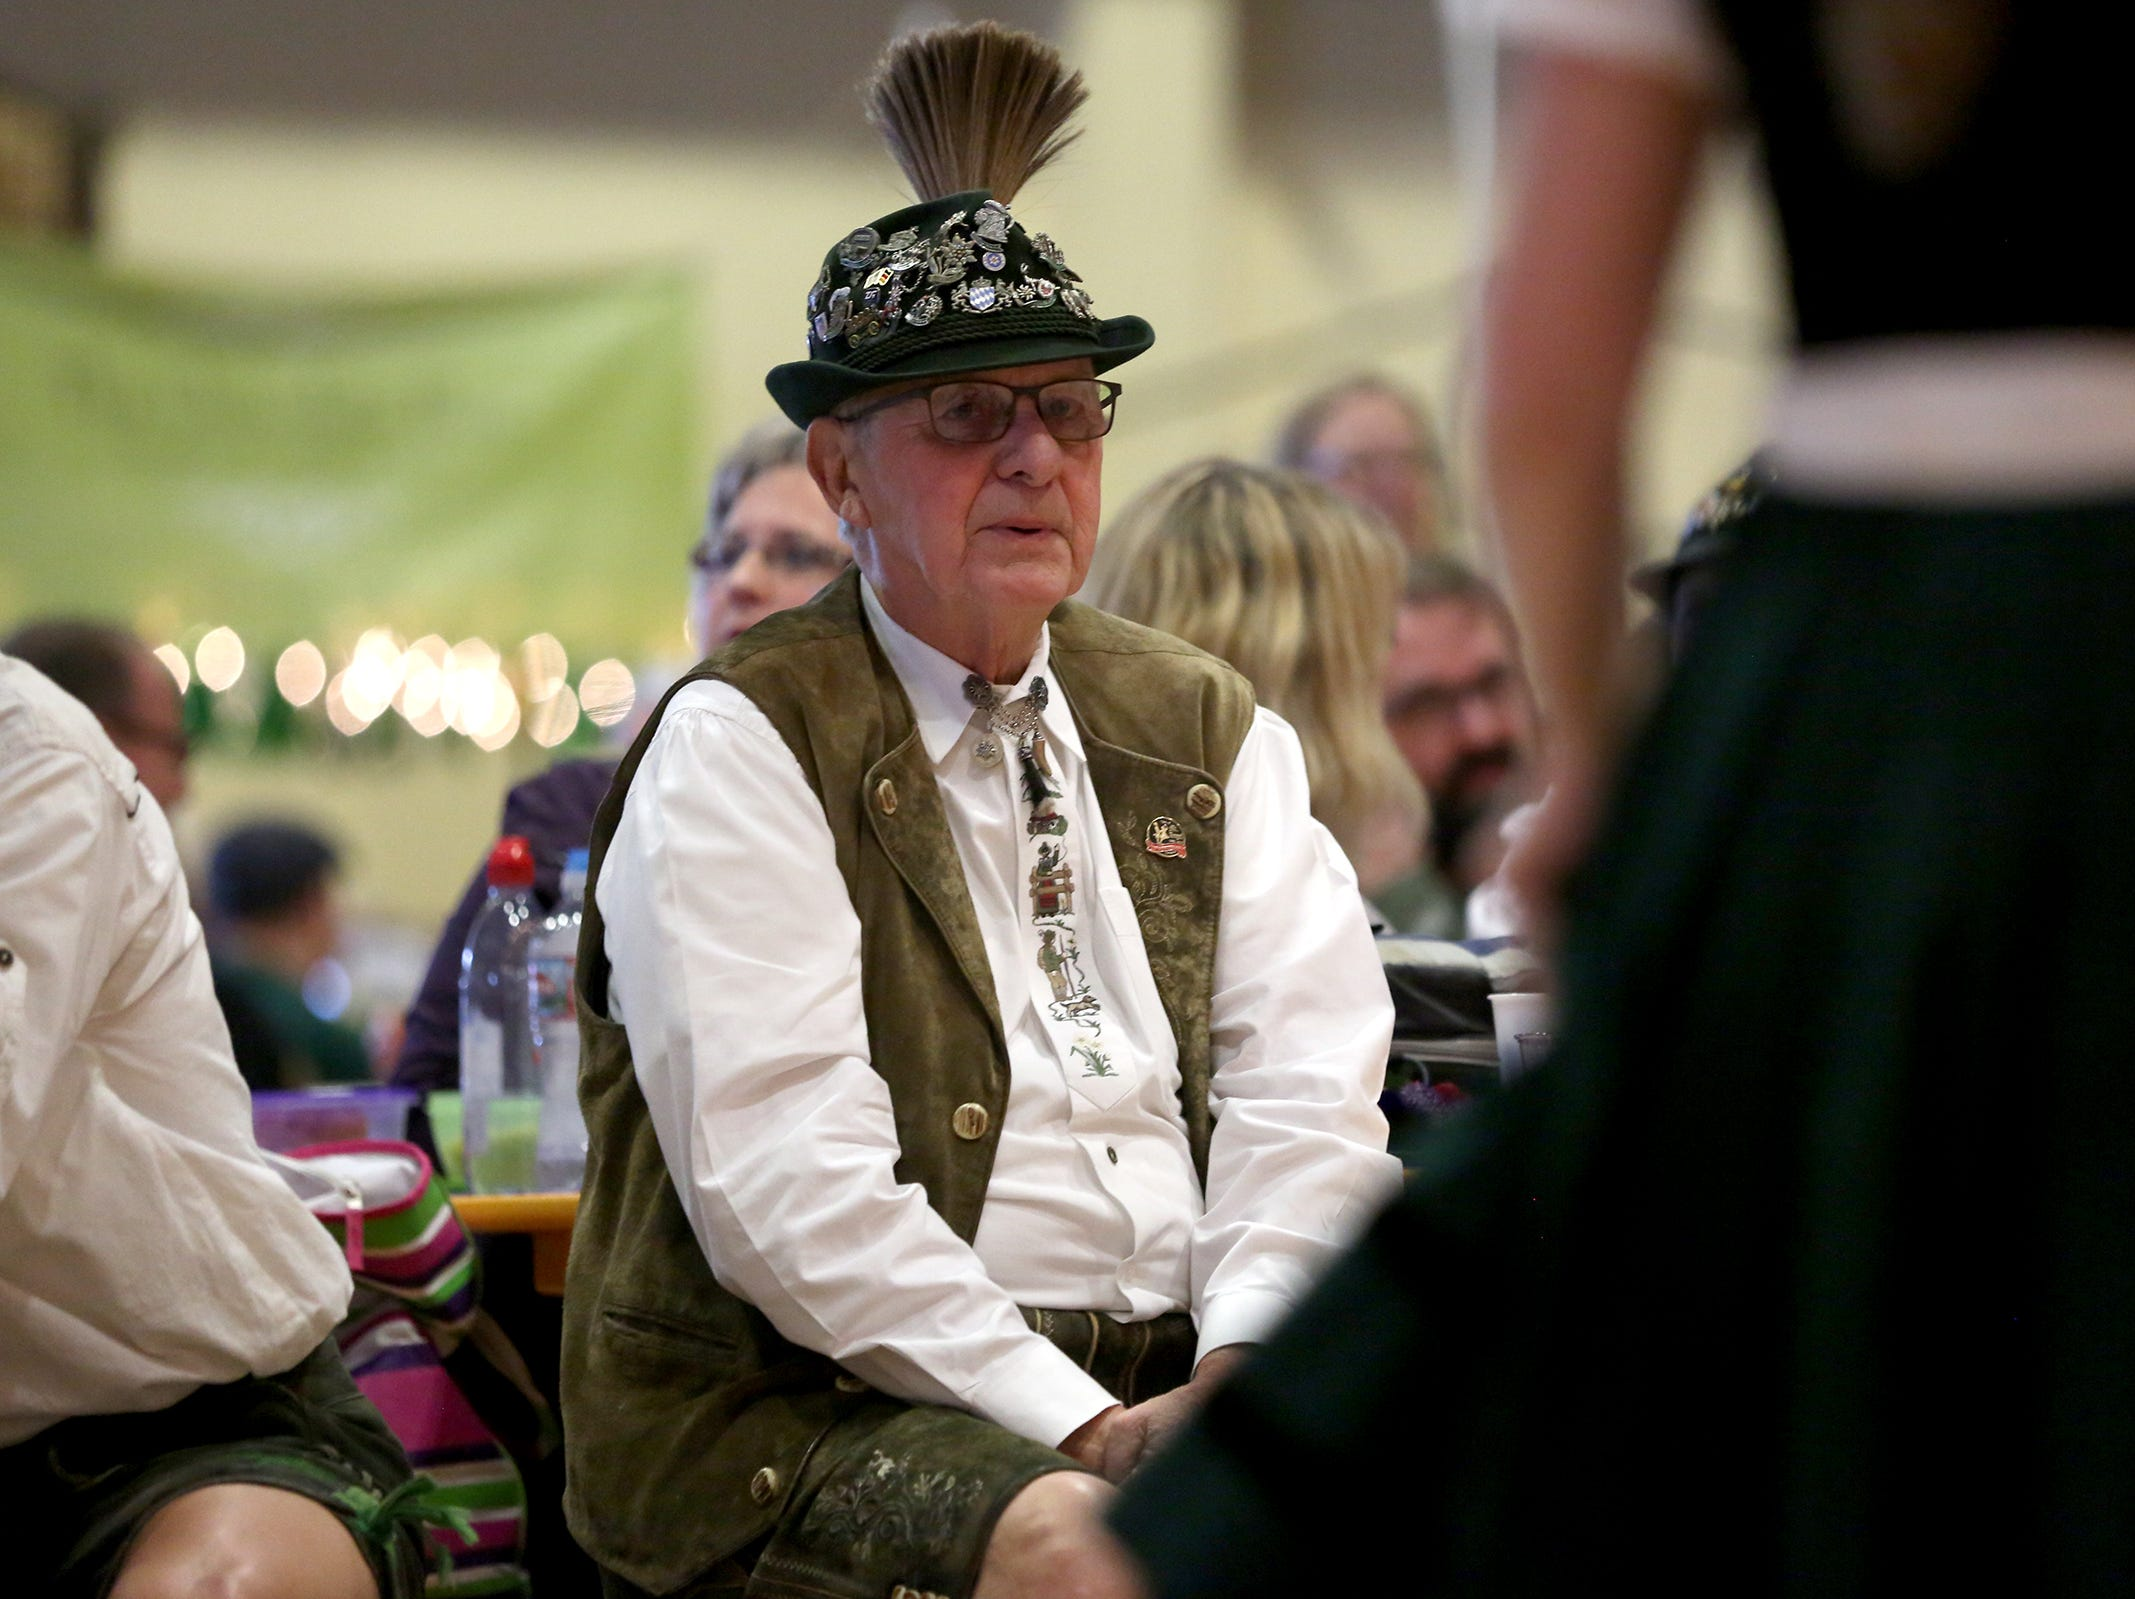 Spectators watch dancers perform at the annual Volksfest in Mt. Angel on Saturday, March 2, 2019.